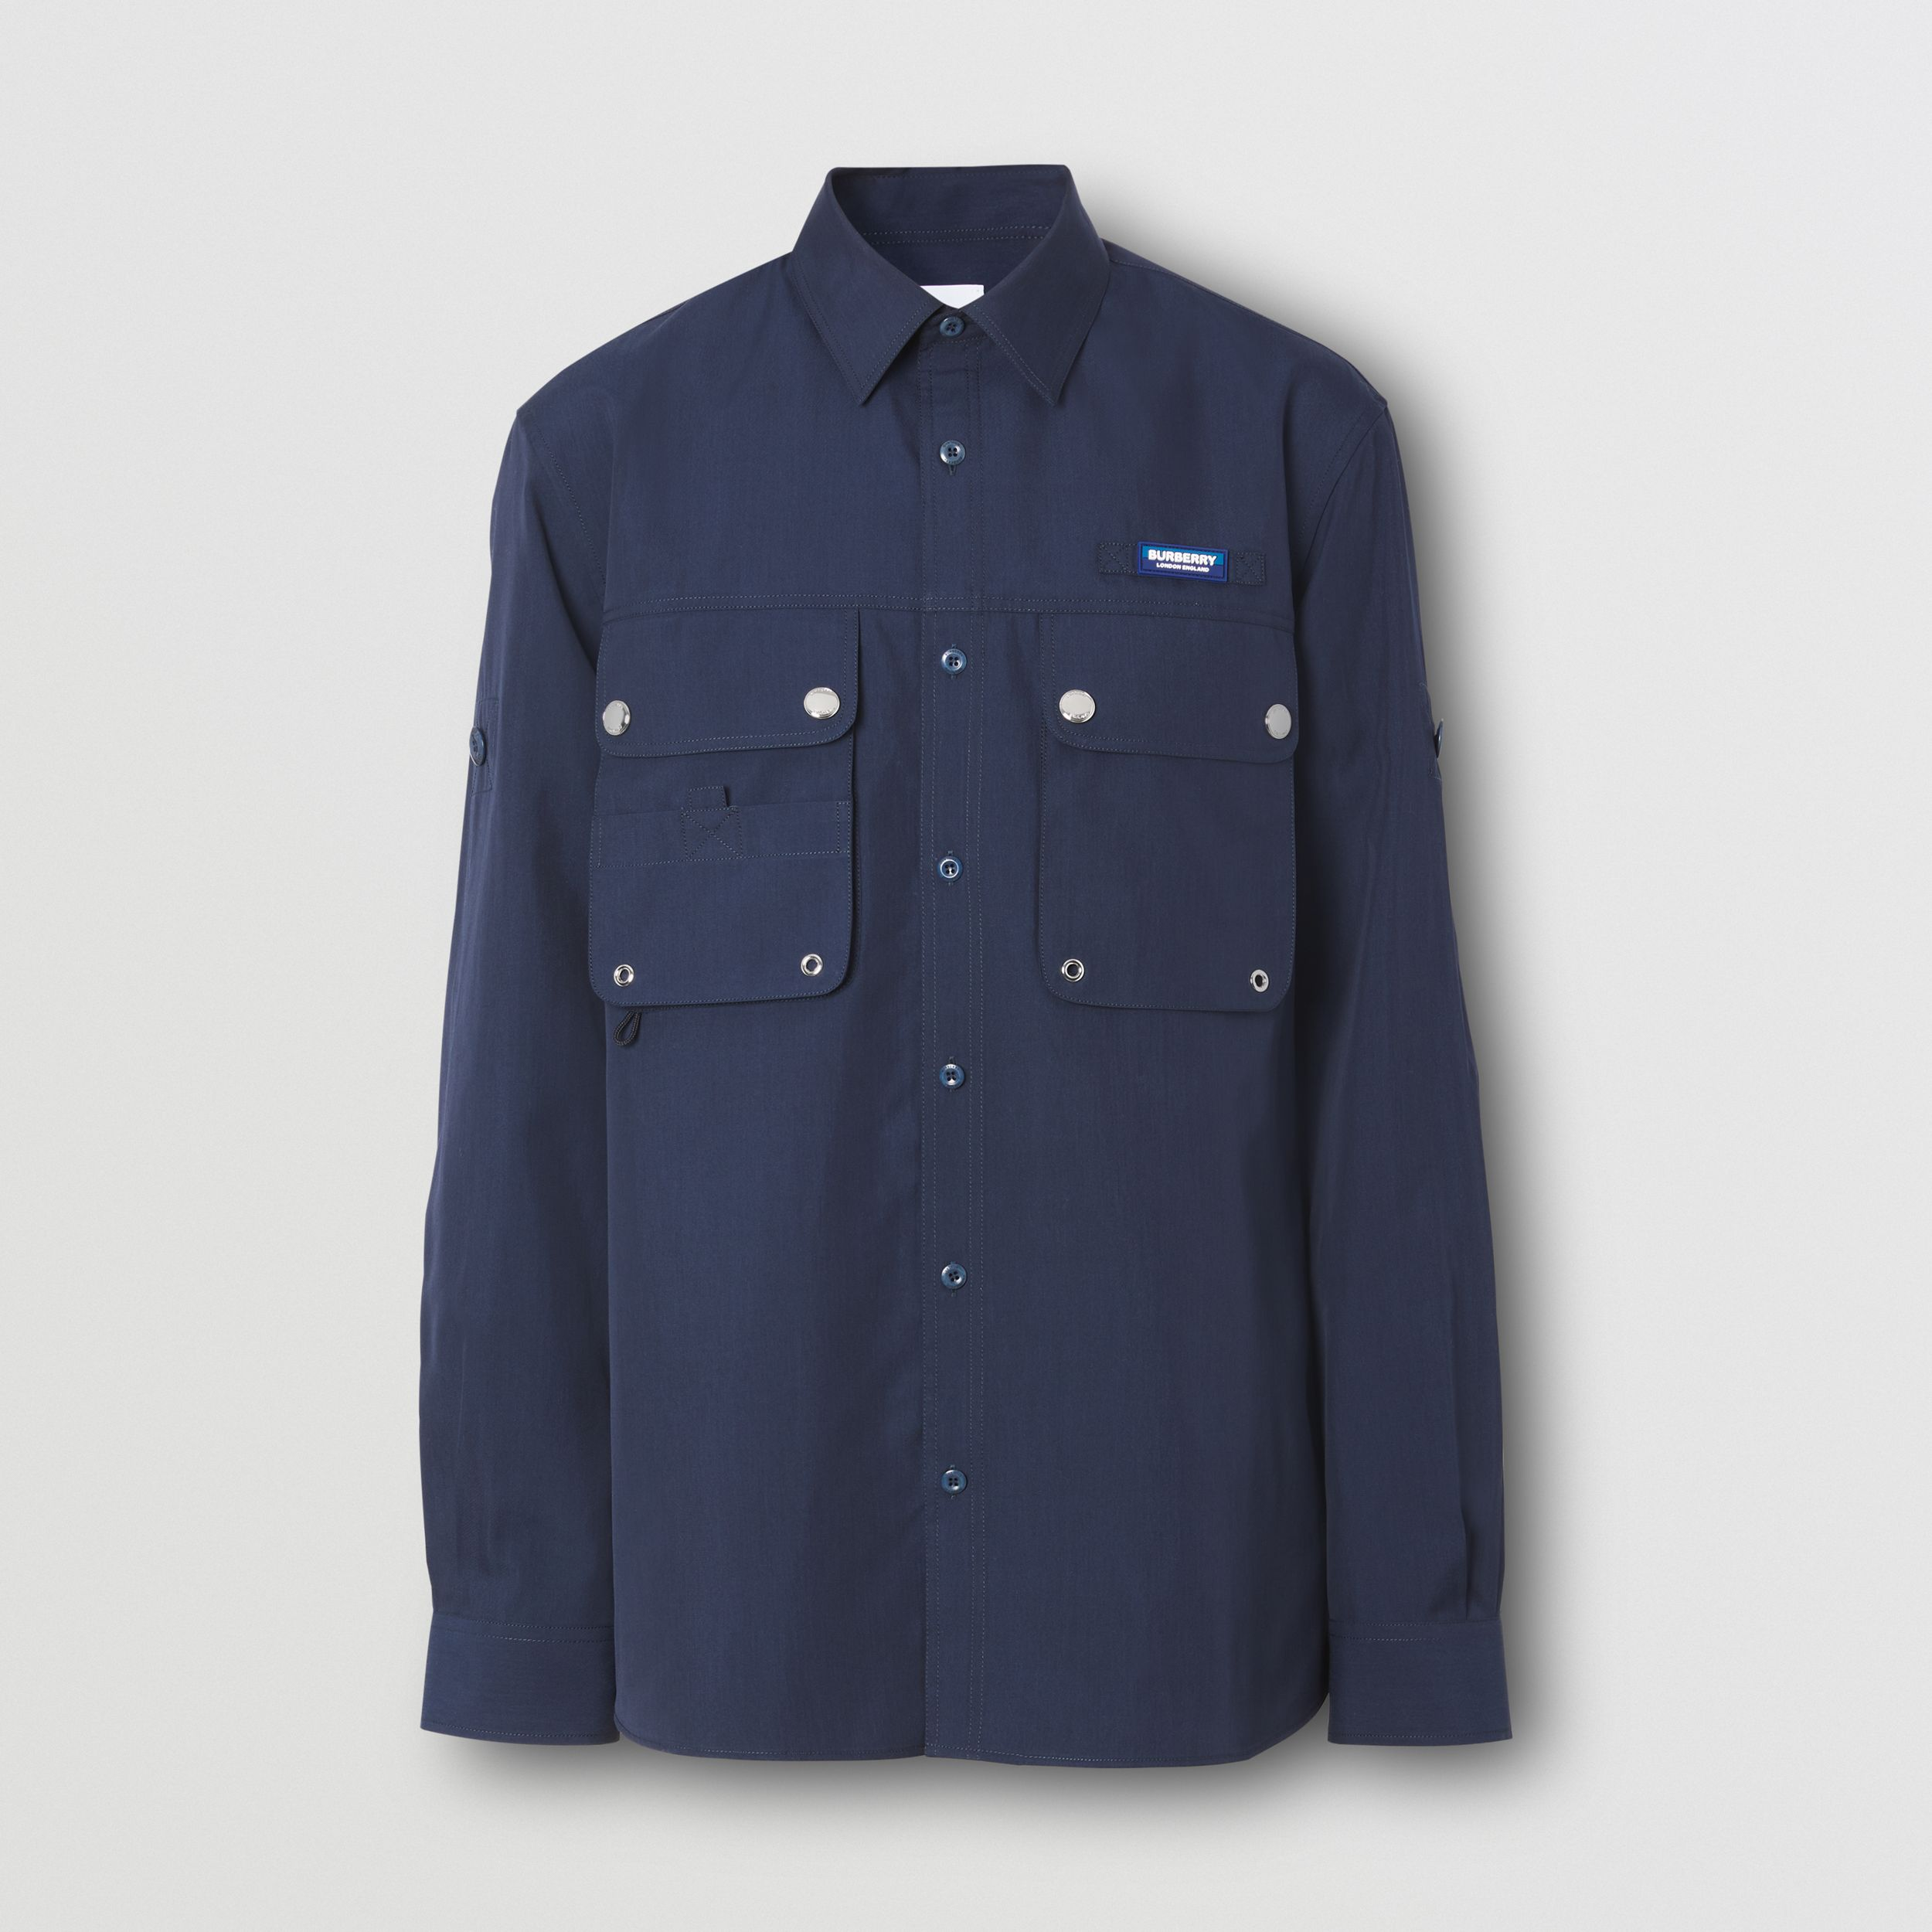 Logo Appliqué Cotton Silk Shirt in Ink Blue - Men | Burberry - 4